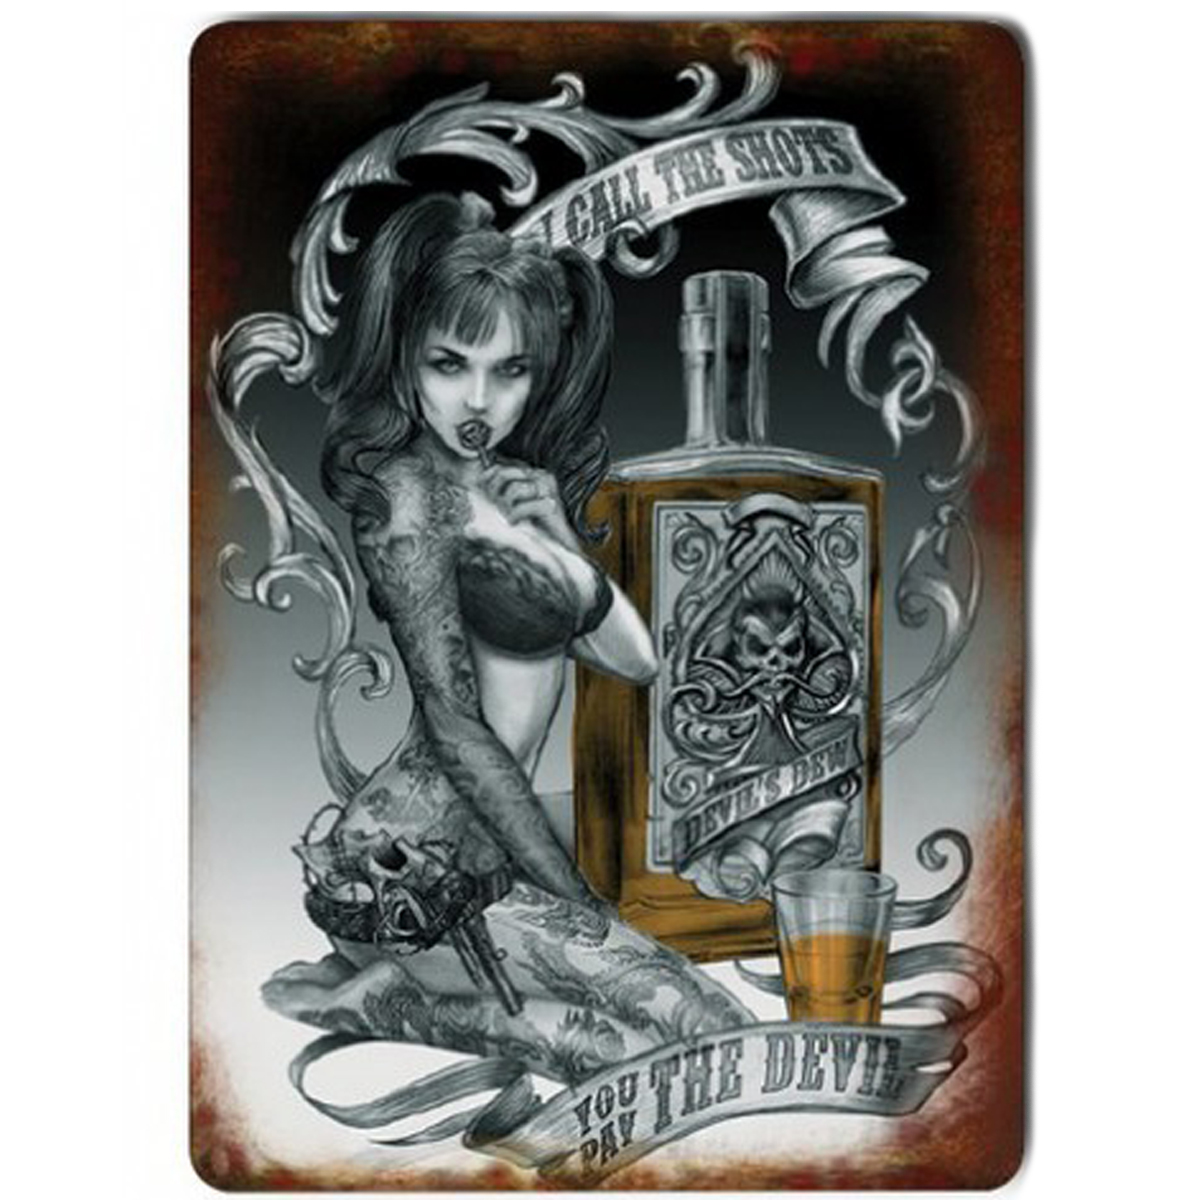 Magnet métal rétro \'You pay the Devil\' tatouage gothique - 9x65 cm - [Q9208]